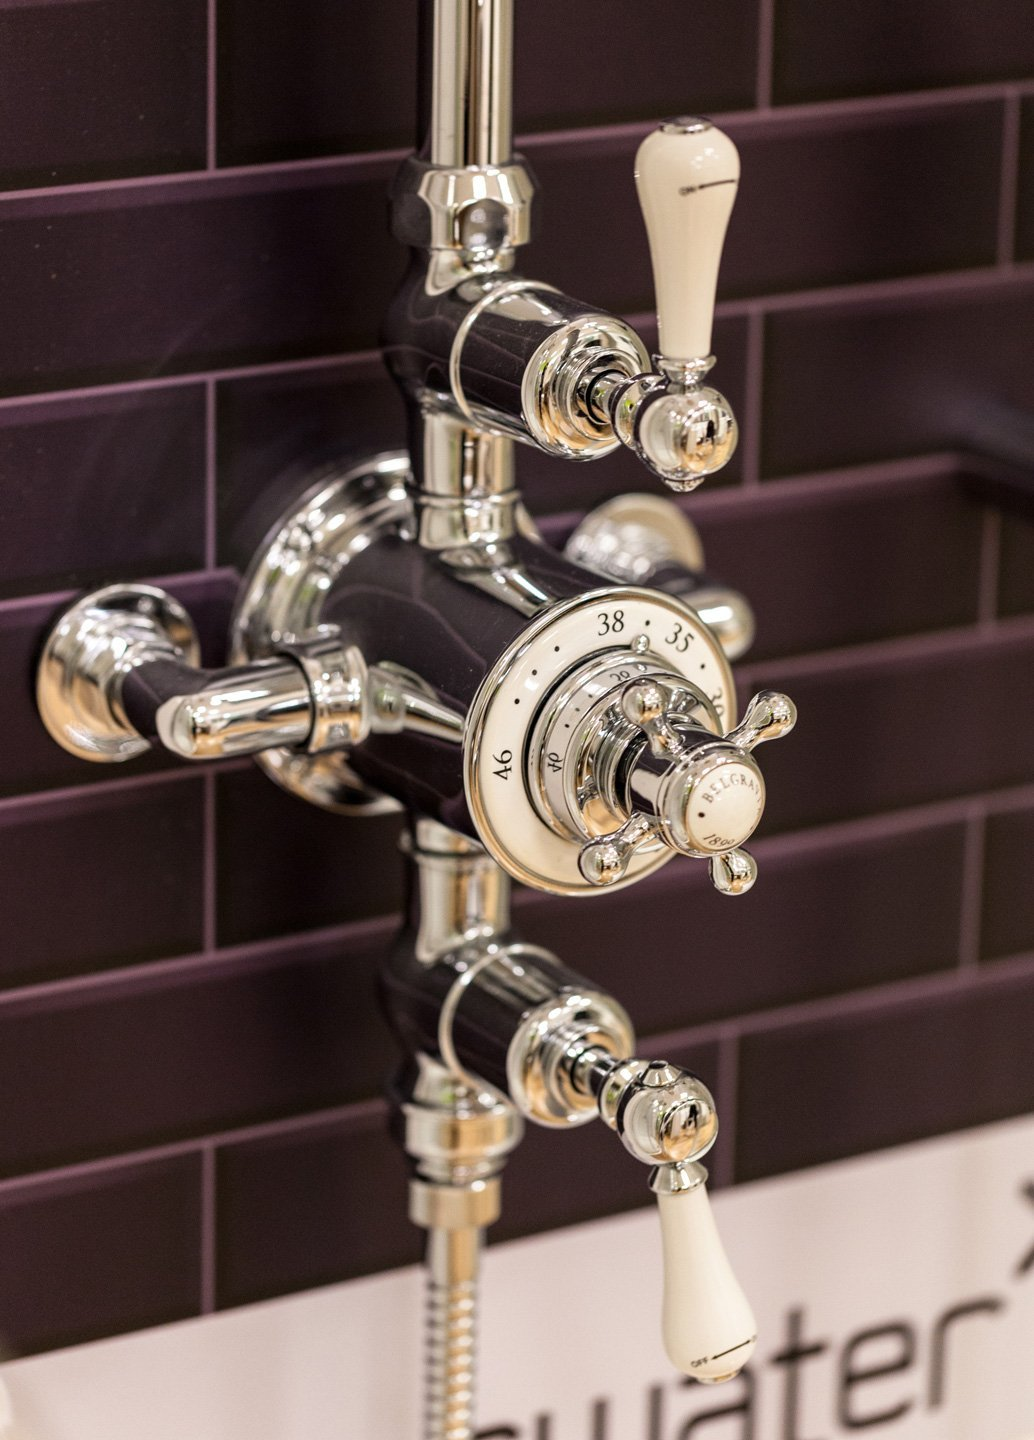 View of quality bathroom fittings